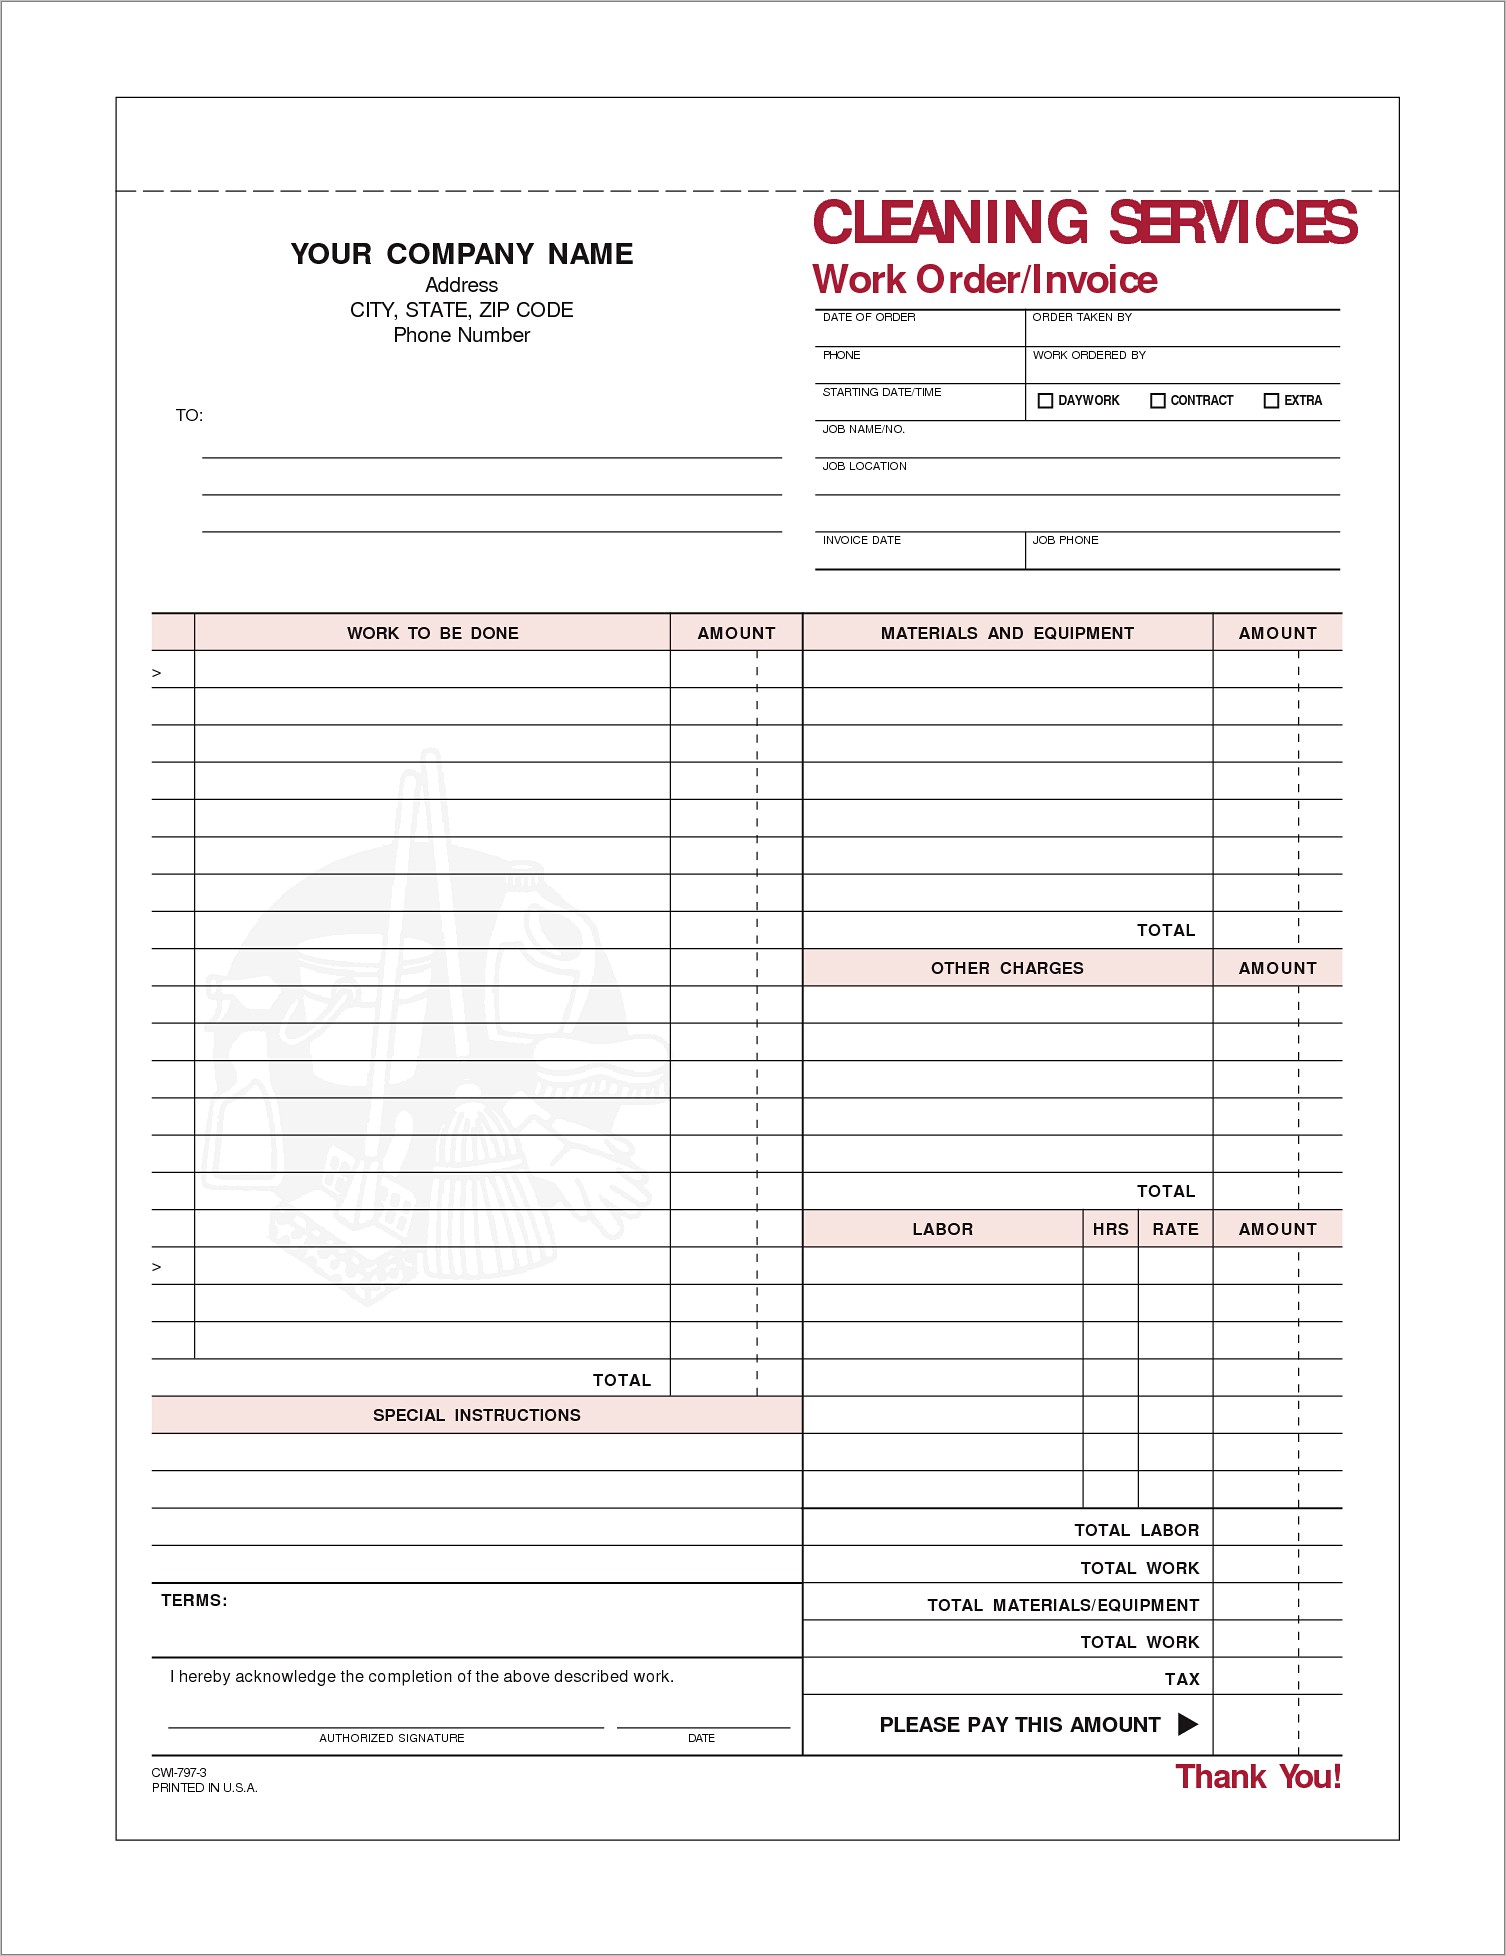 House Cleaning Invoice Example